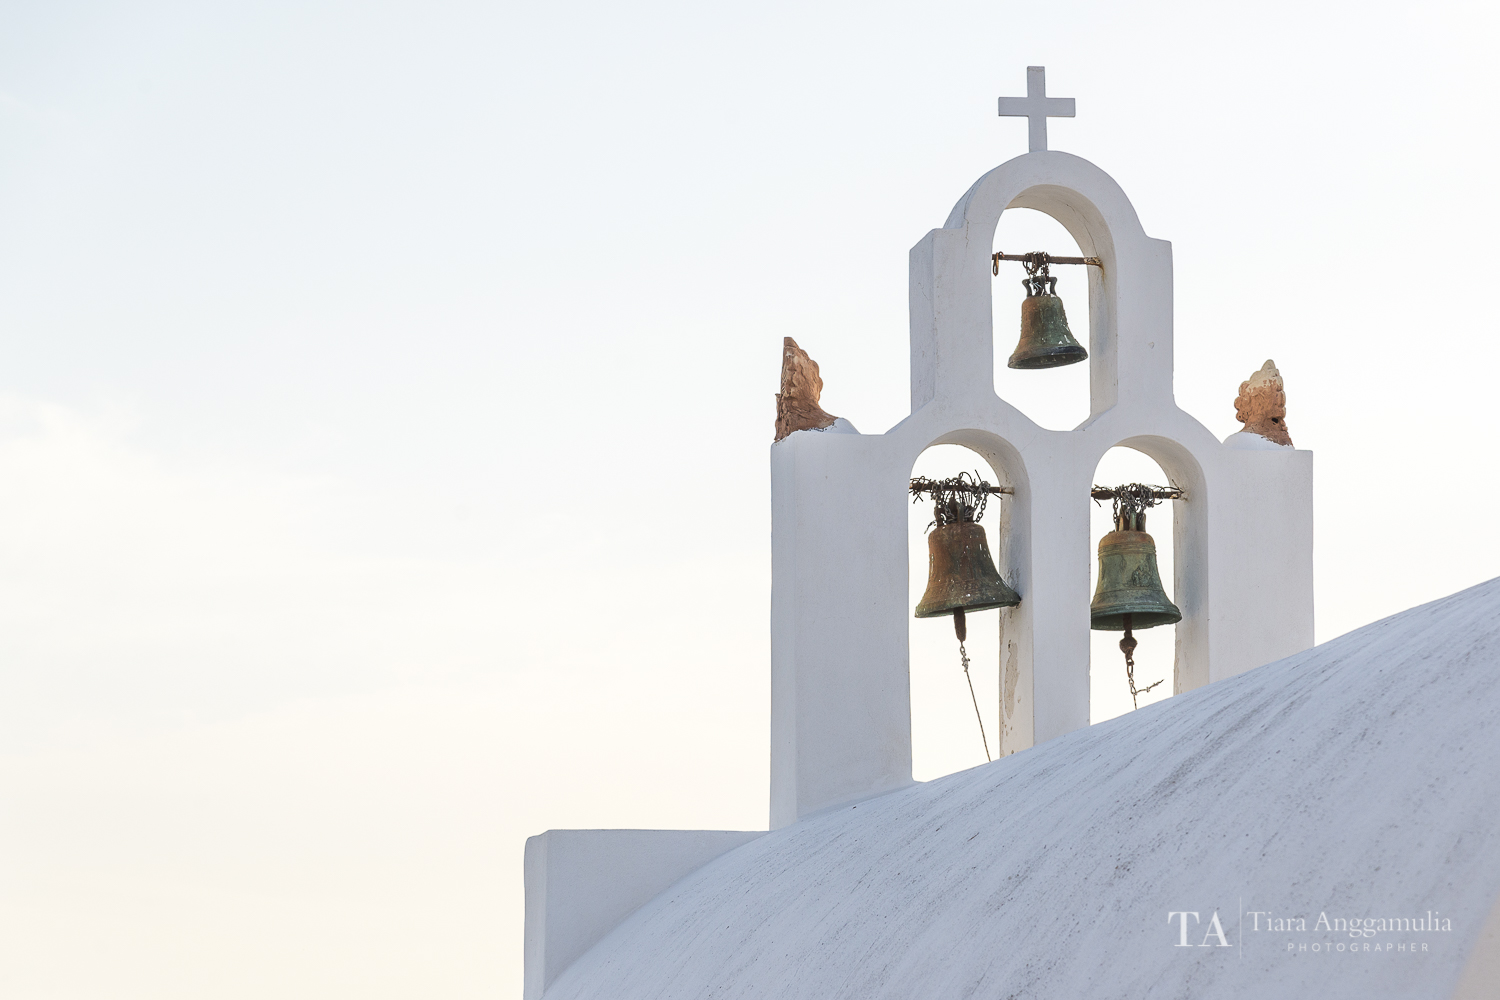 A view towards the bells on top of a church.